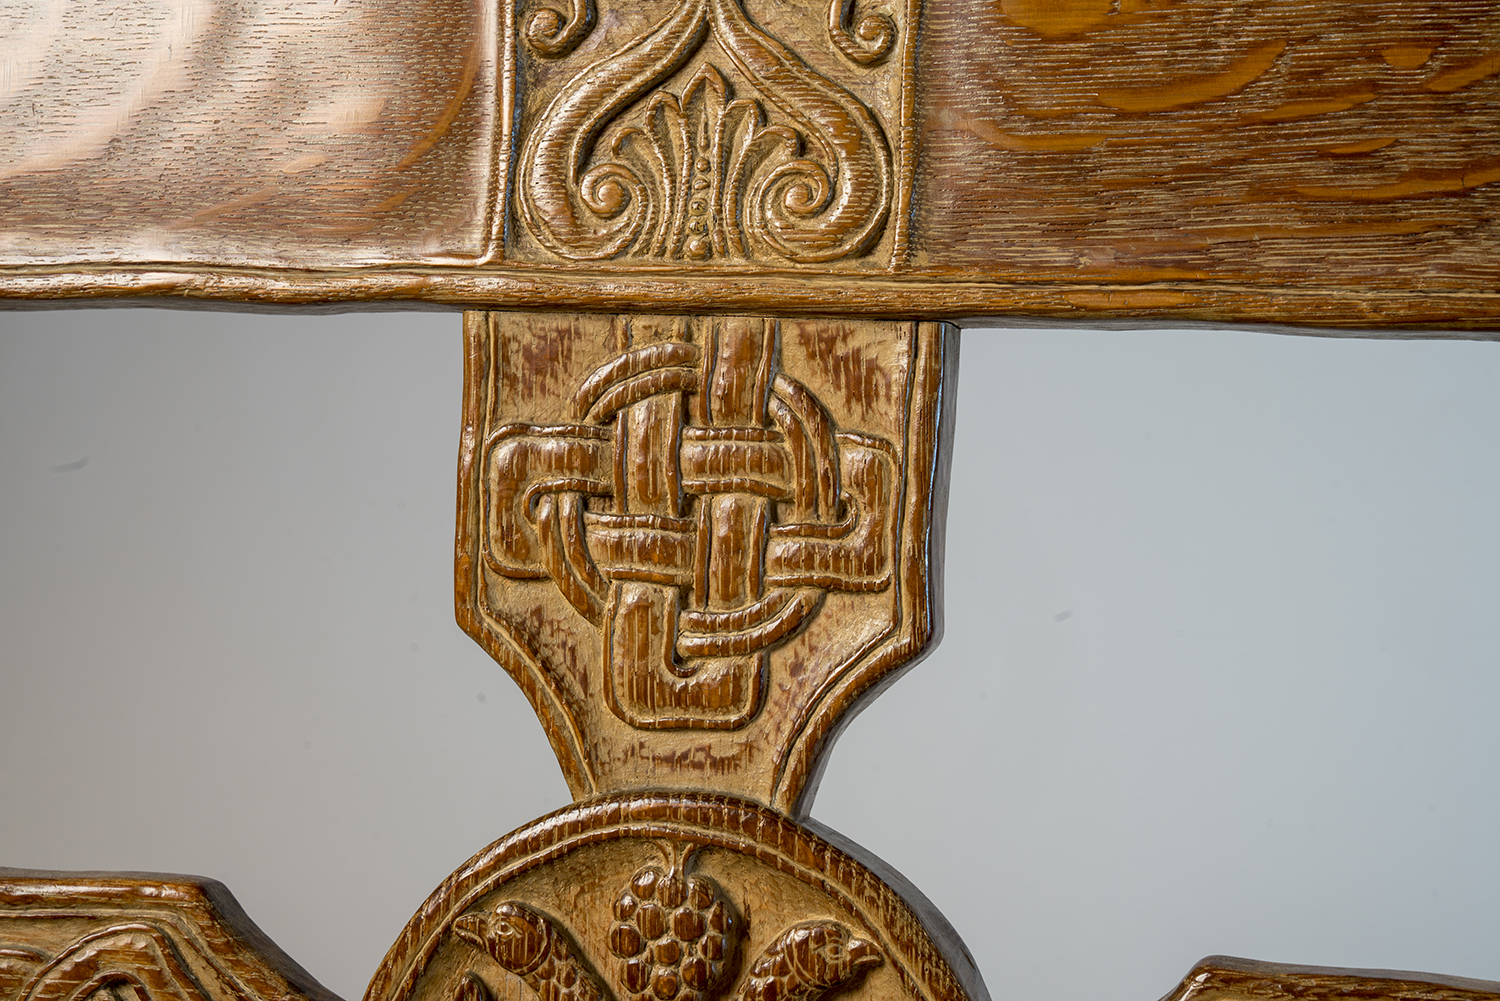 Figure 6: Detail of a design on the back (front side) of Glencairn's chair.